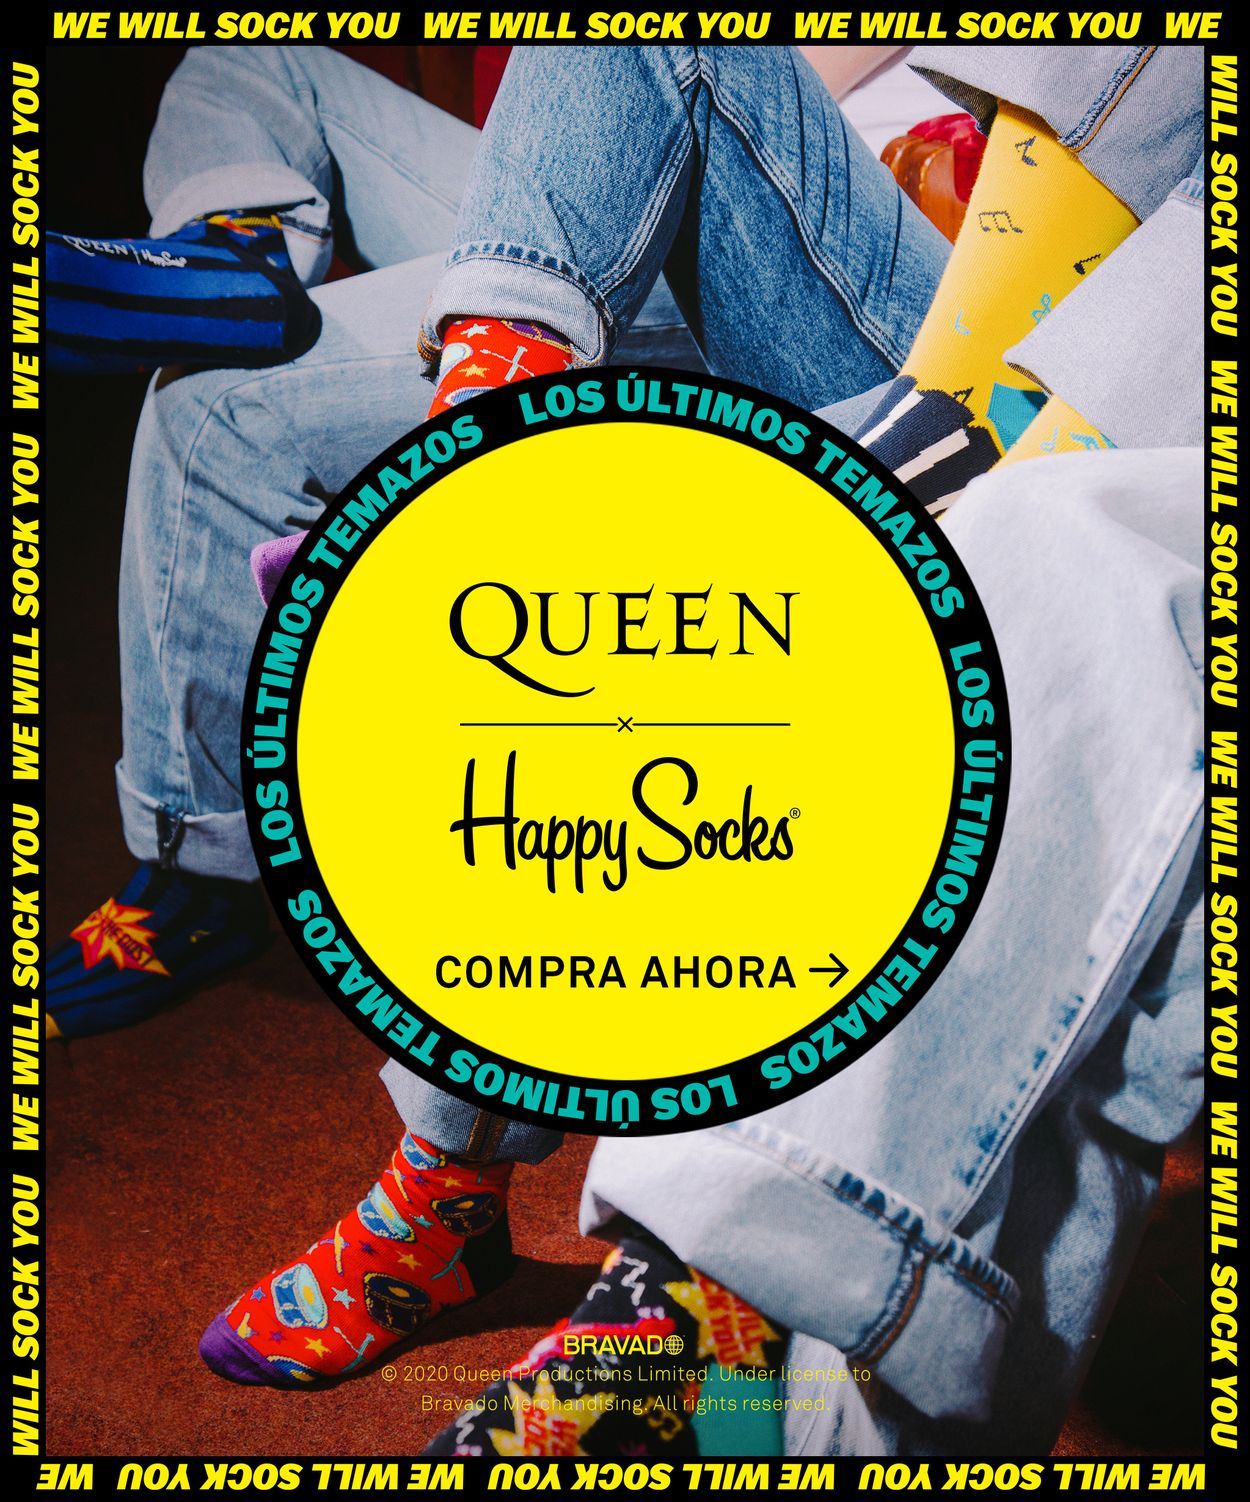 Queen x Happy Socks